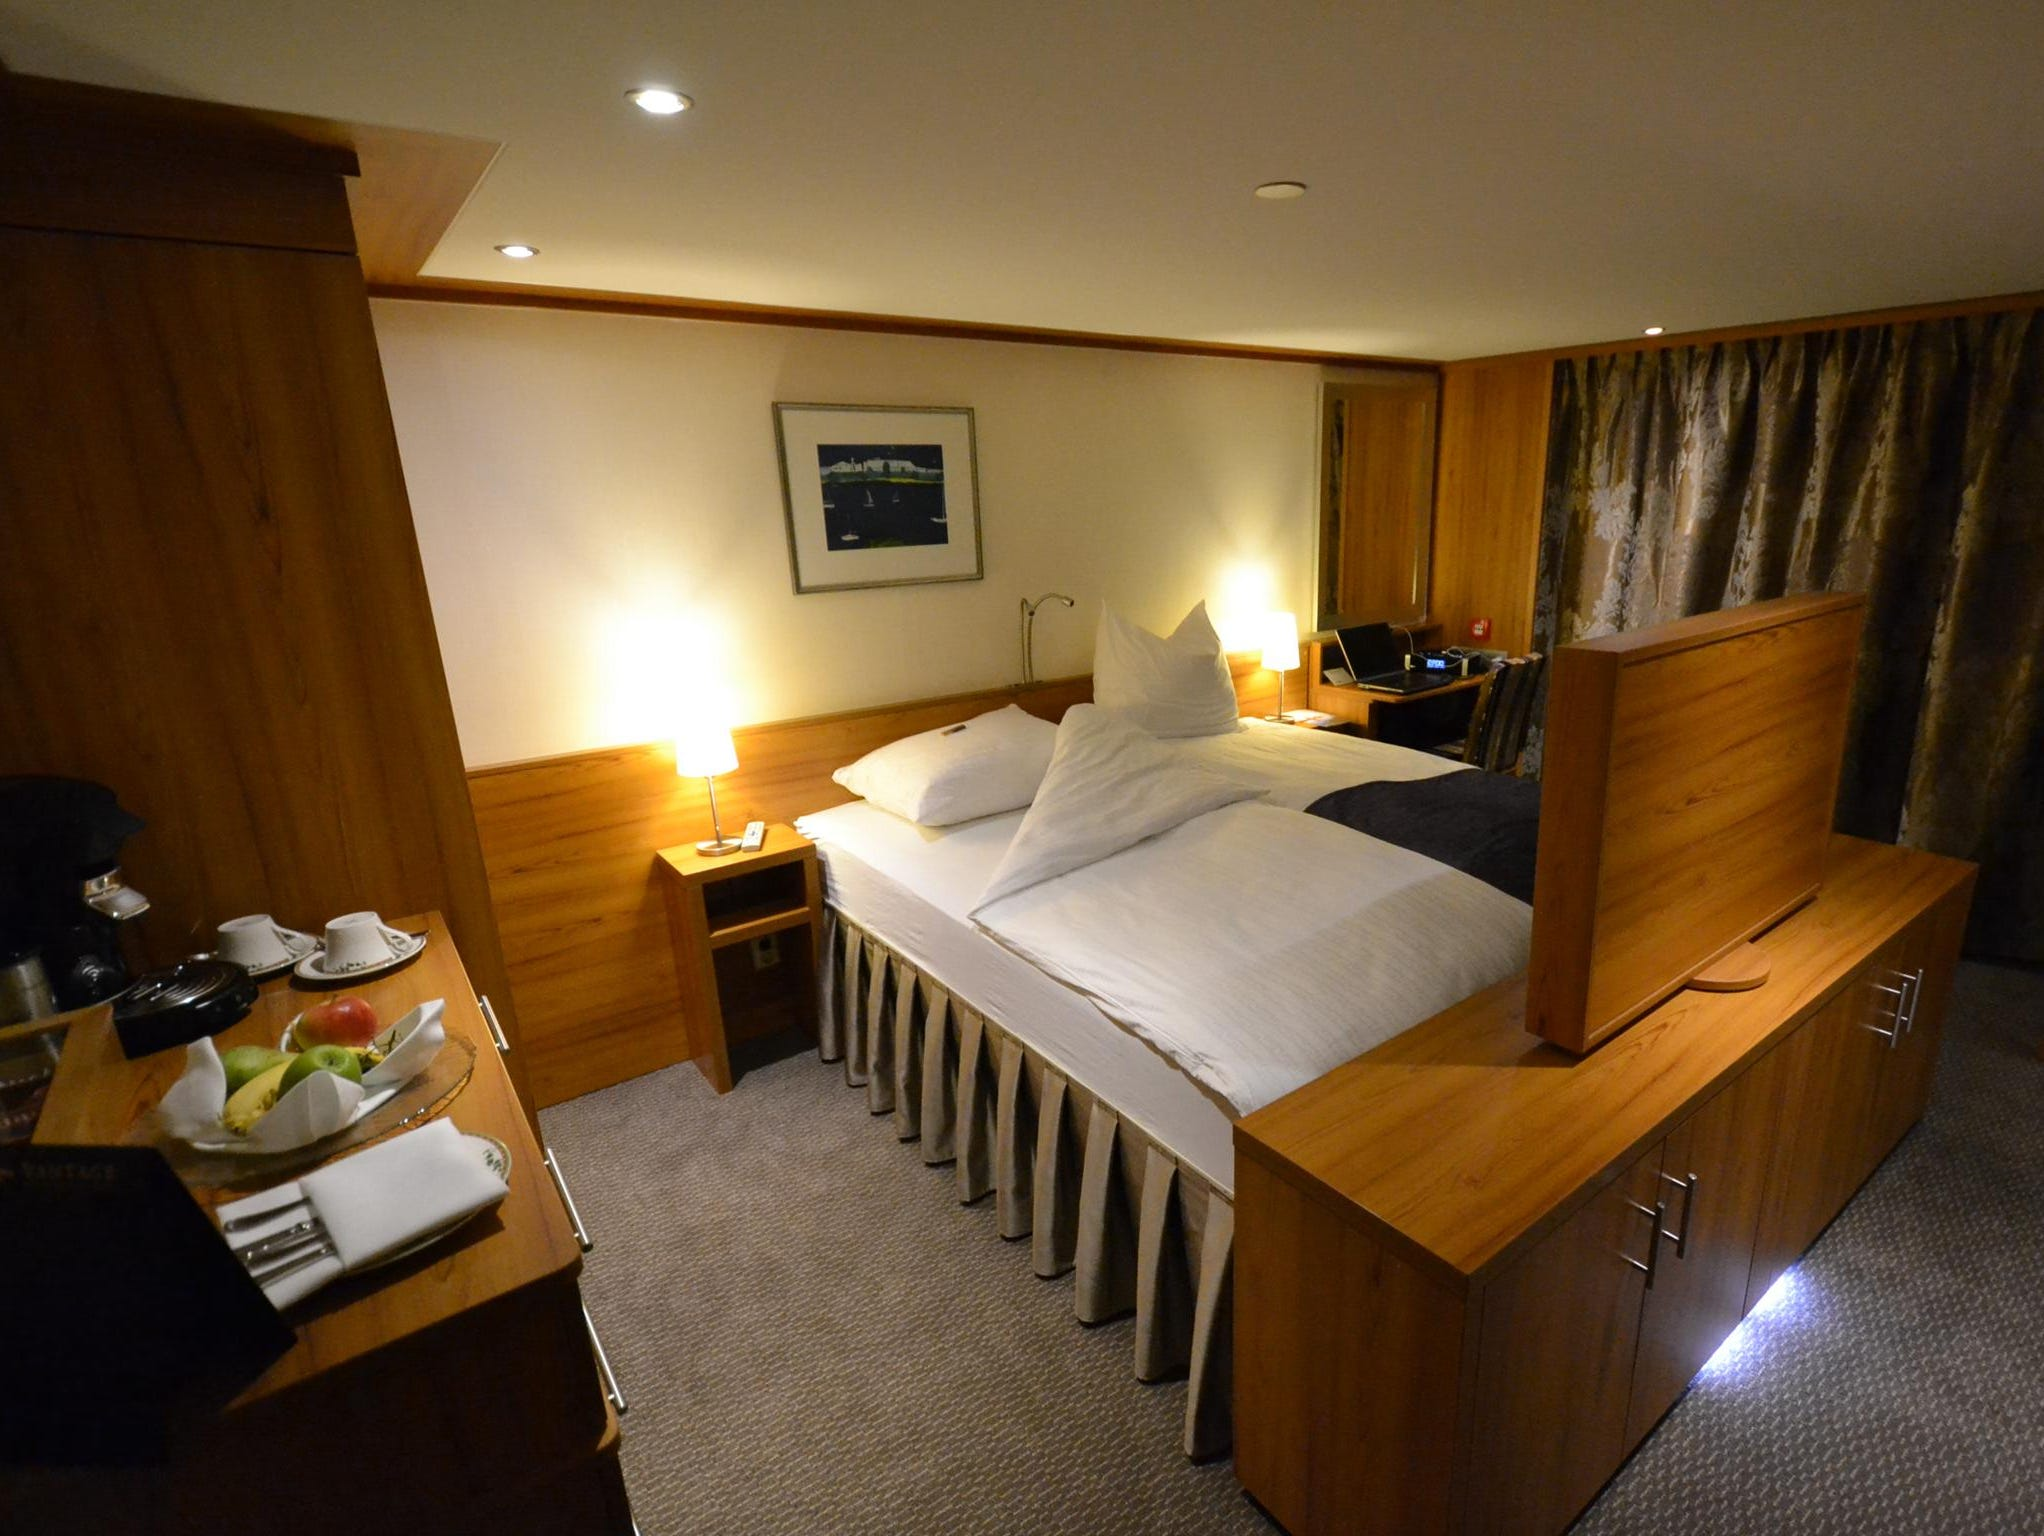 Among the top accommodations on the ship are 12 Deluxe Suites that measure 250 square feet and offer French balconies and a sitting area with a table.